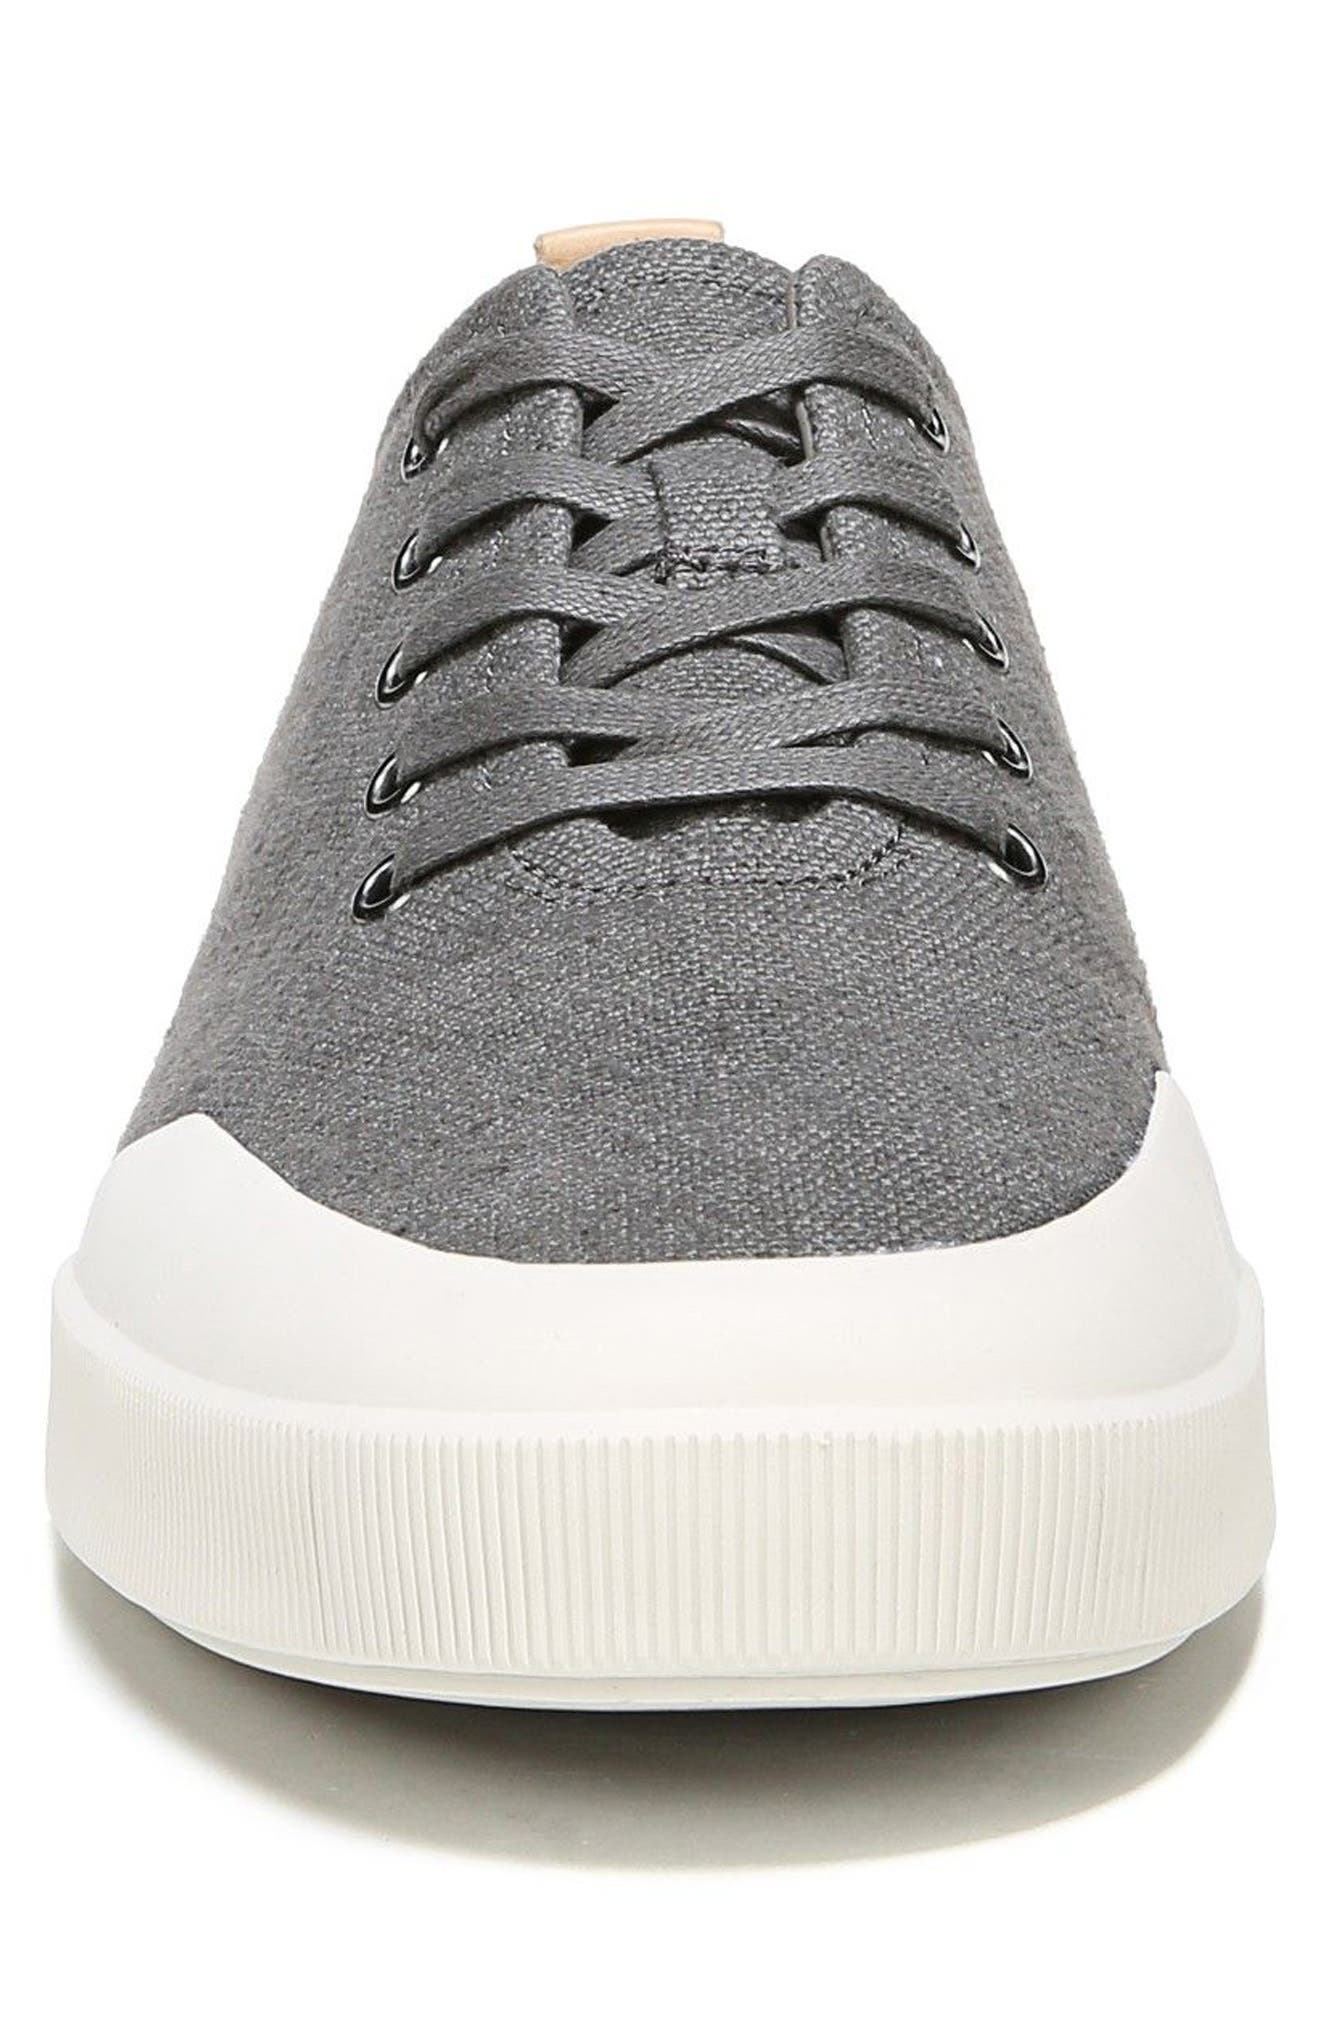 Victor Low Top Sneaker,                             Alternate thumbnail 4, color,                             020